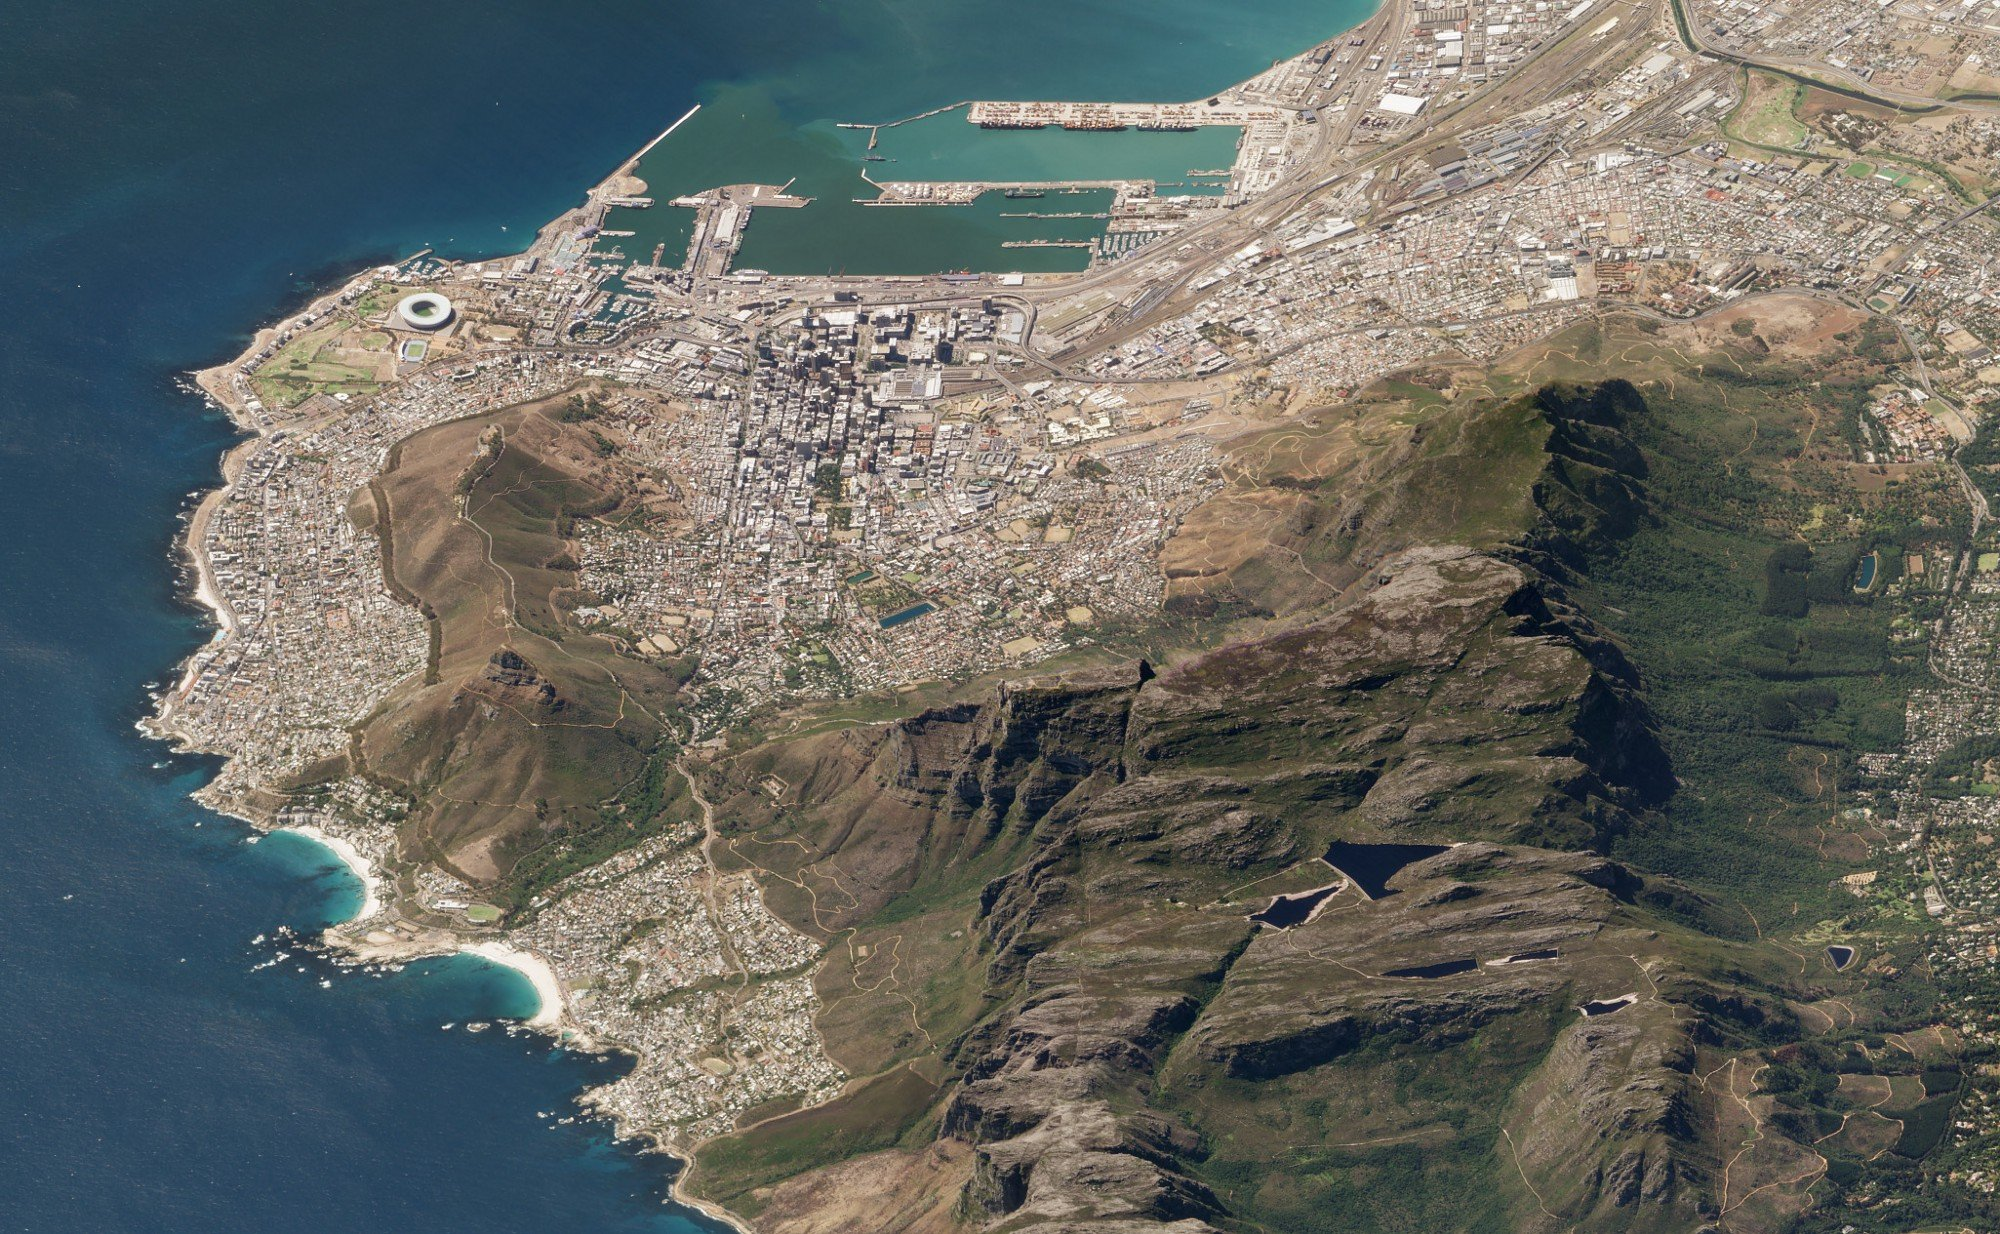 Table Mountain, Cape Town, South Africa. March 19, 2018. Image ©2018 Planet Labs, Inc. cc-by-sa4.0.